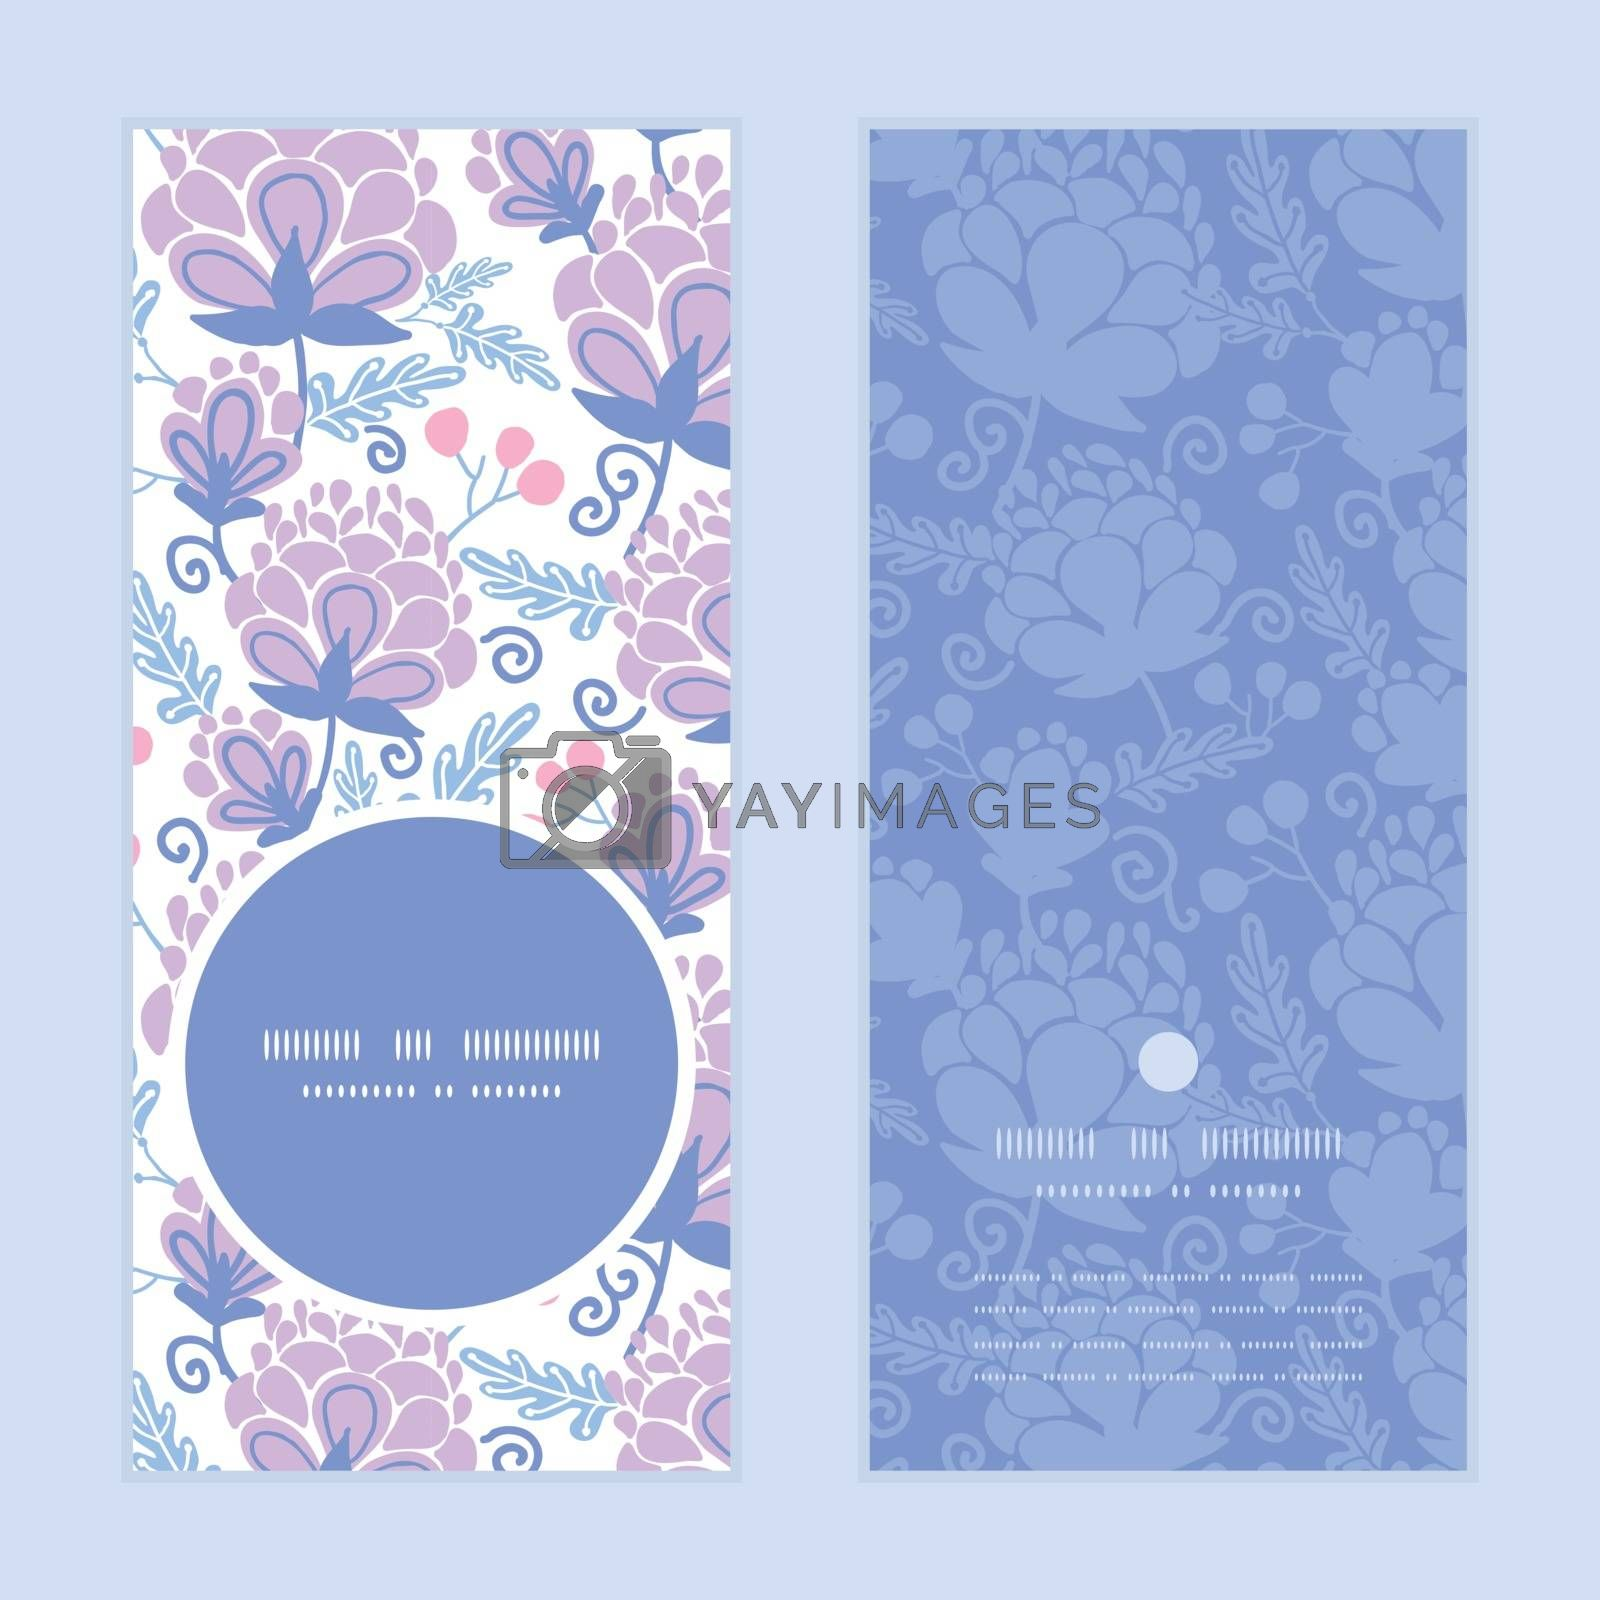 Royalty free image of Vector soft purple flowers vertical round frame pattern invitation greeting cards set by Oksancia